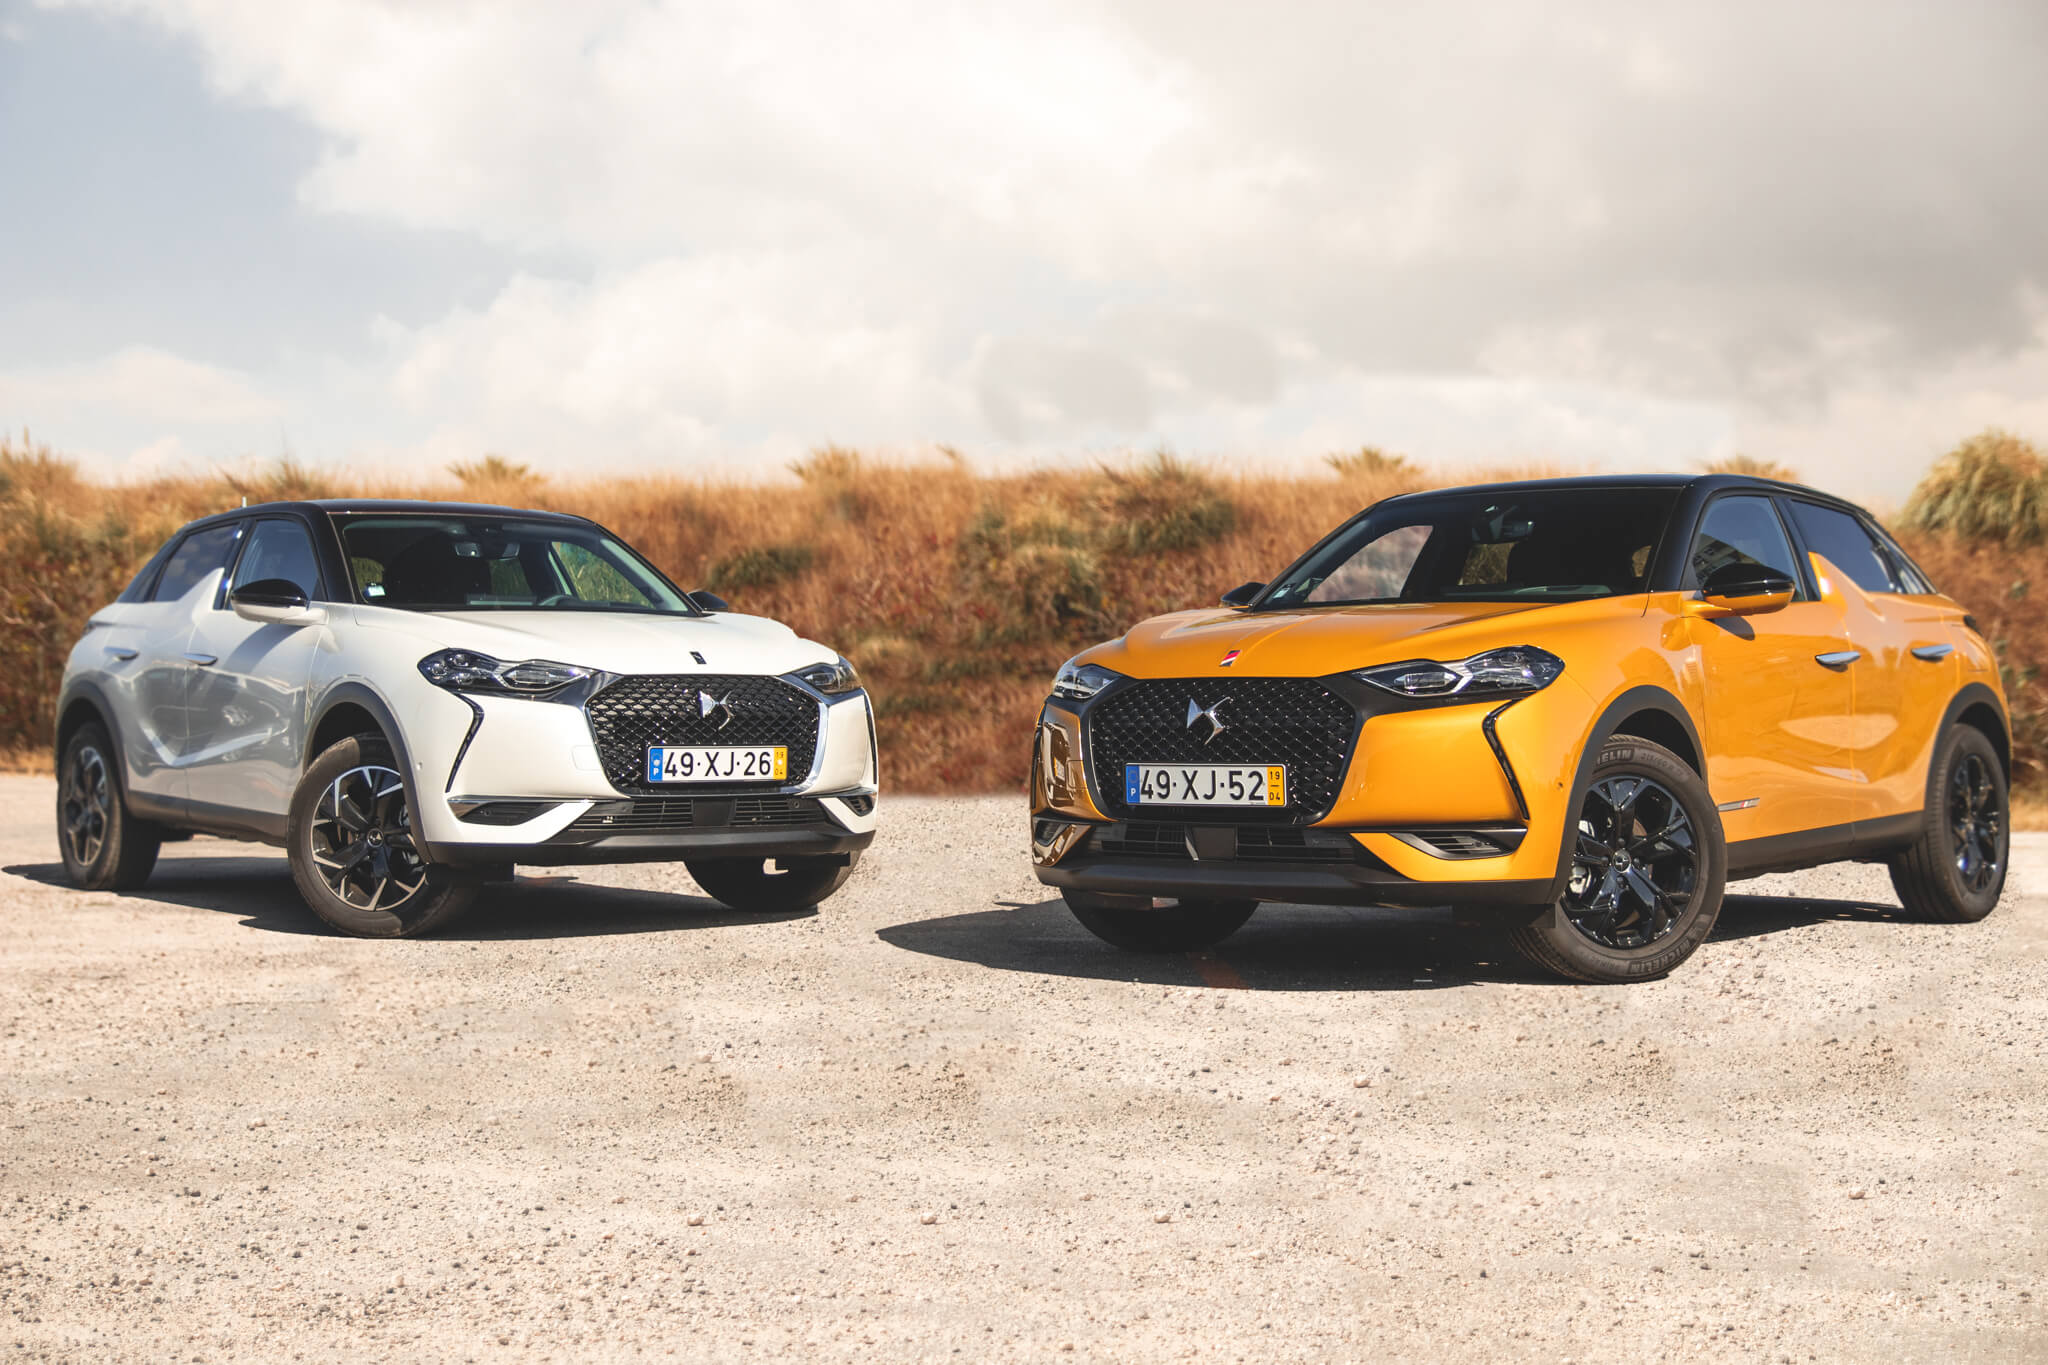 DS 3 Crossback 1.5 BlueHDI-2